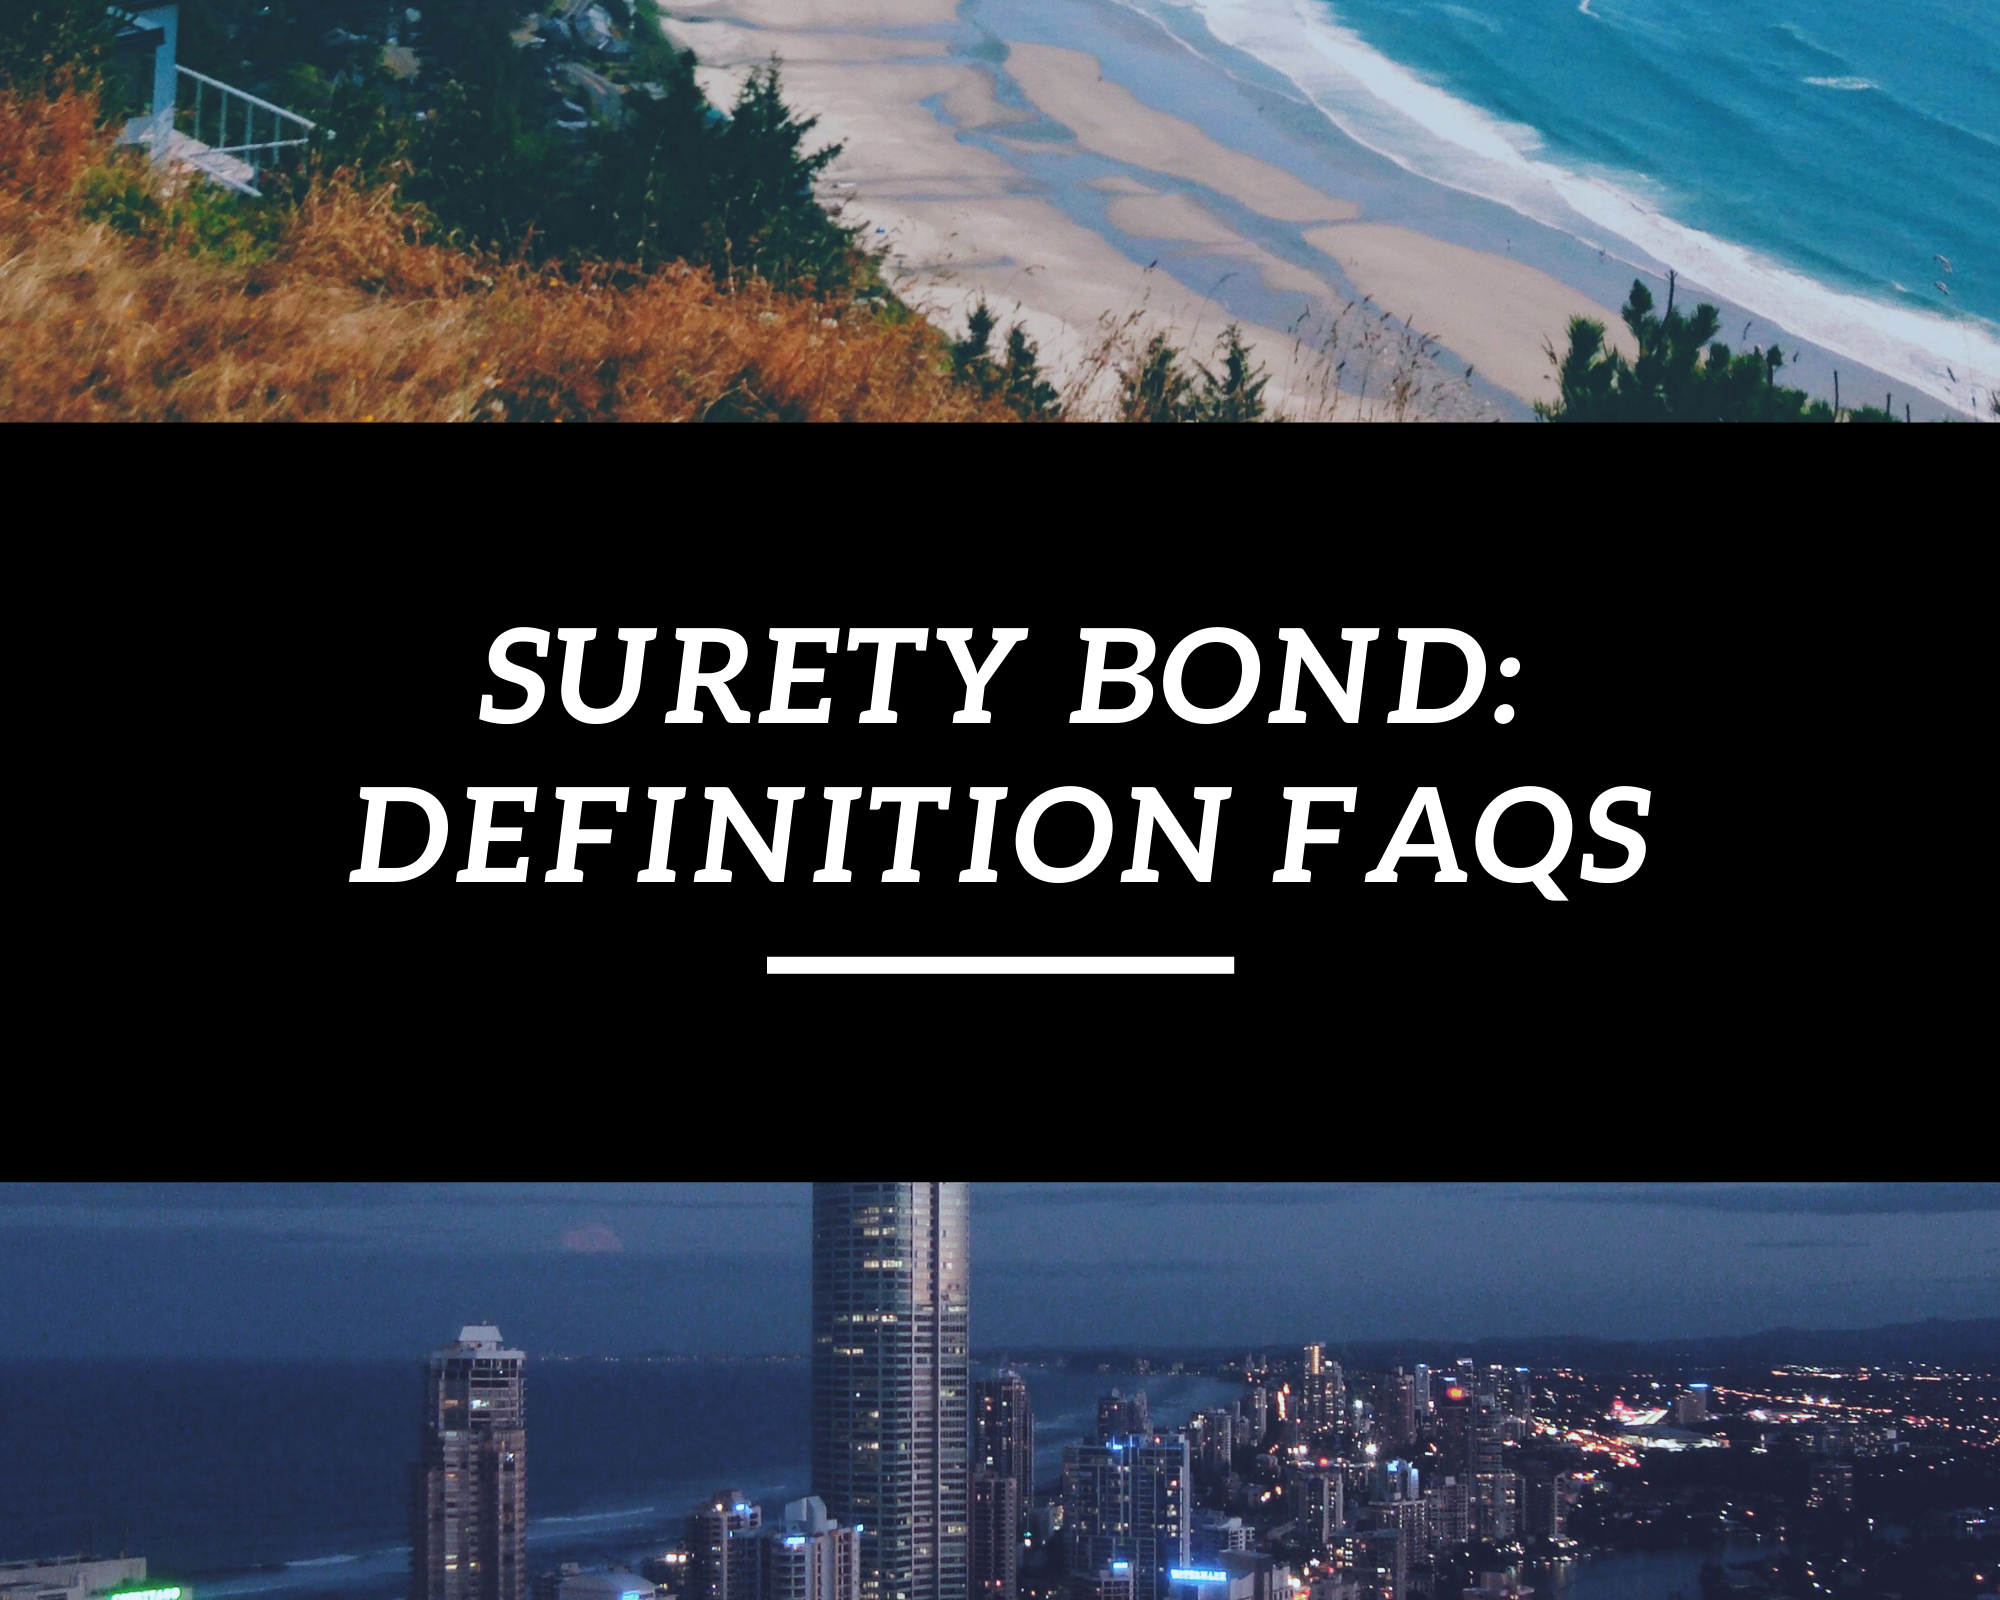 surety bond - what is a surety bond - city view and nature